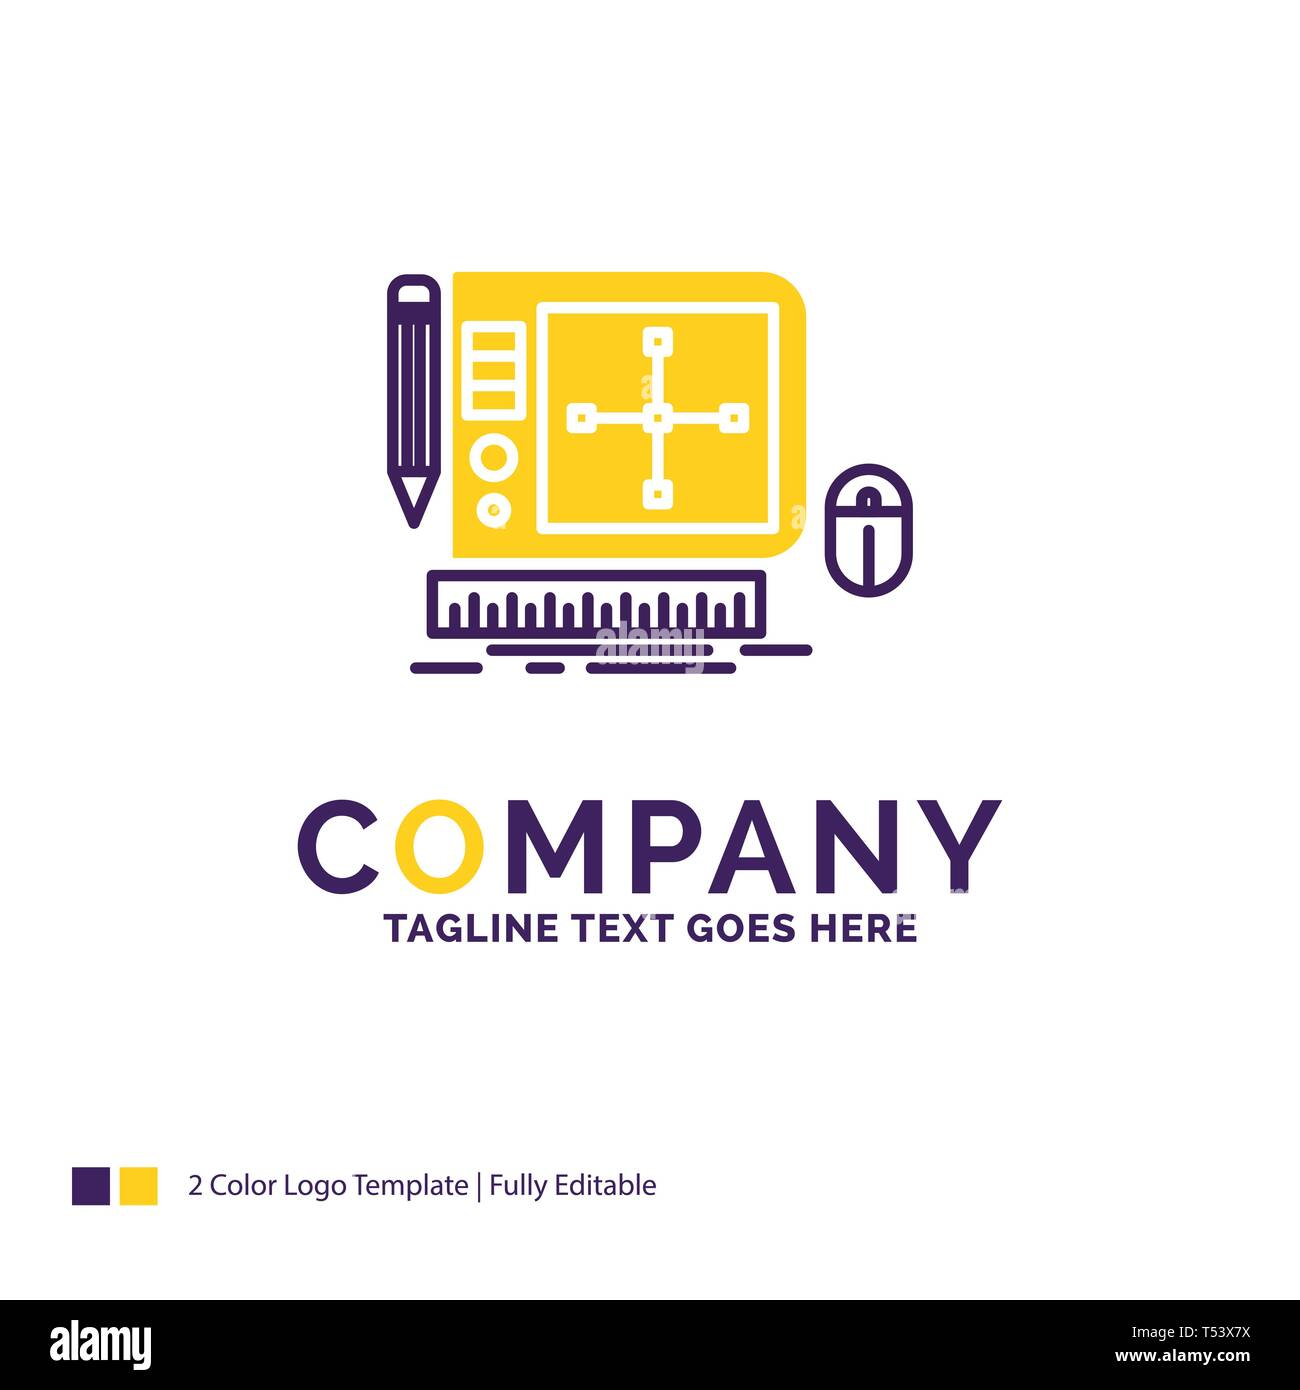 Company Name Logo Design For Design Graphic Tool Software Web Designing Purple And Yellow Brand Name Design With Place For Tagline Creative Logo Stock Vector Image Art Alamy